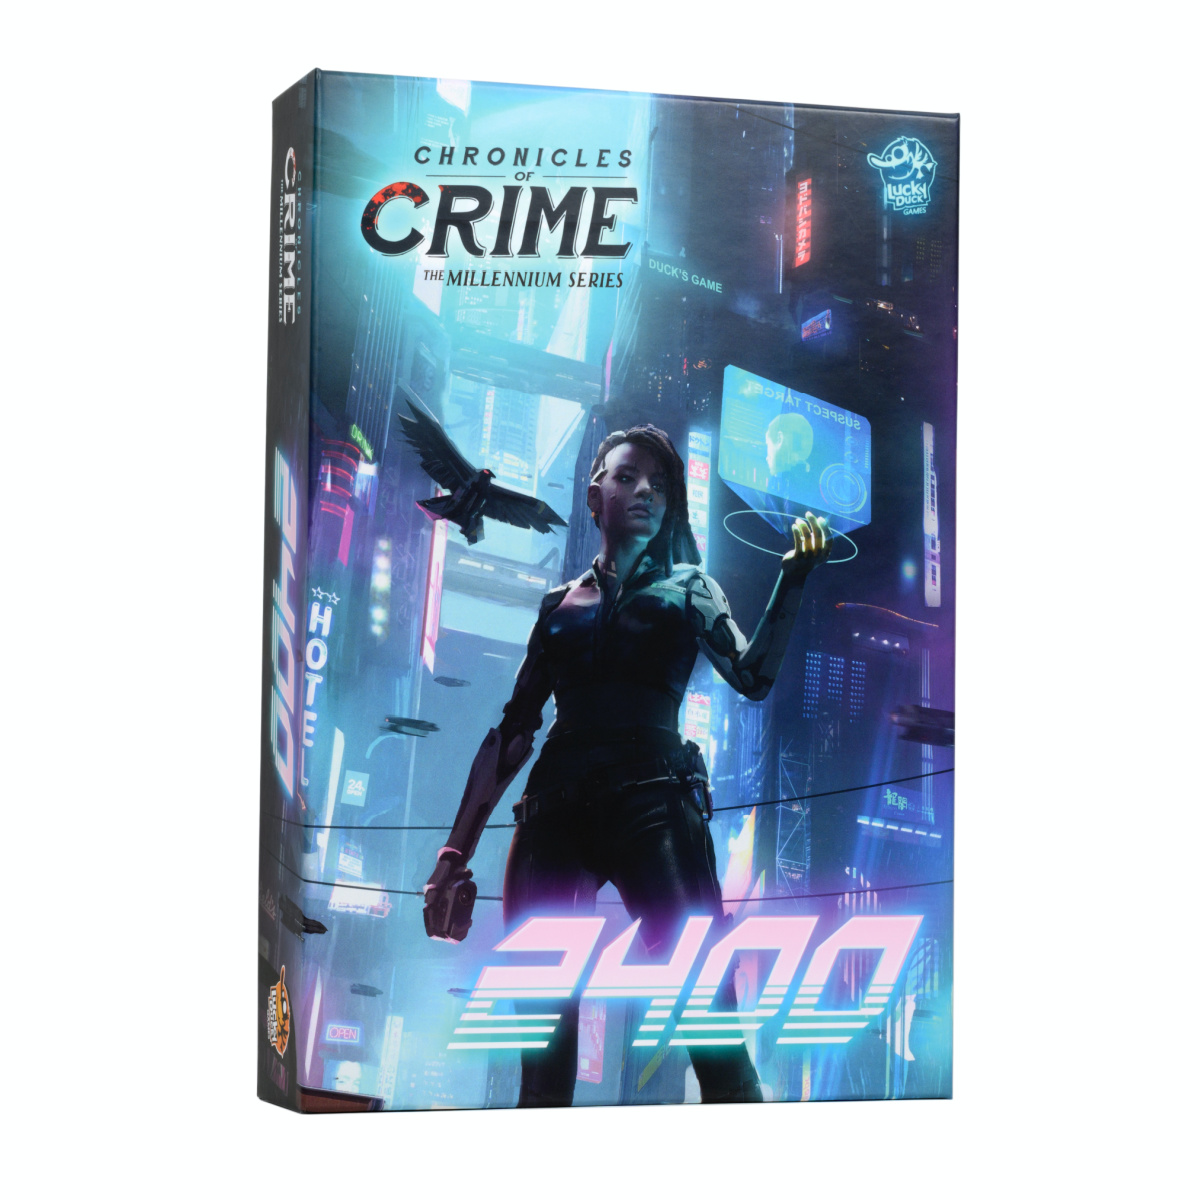 Chronicles of Crime - 2400   44,99$